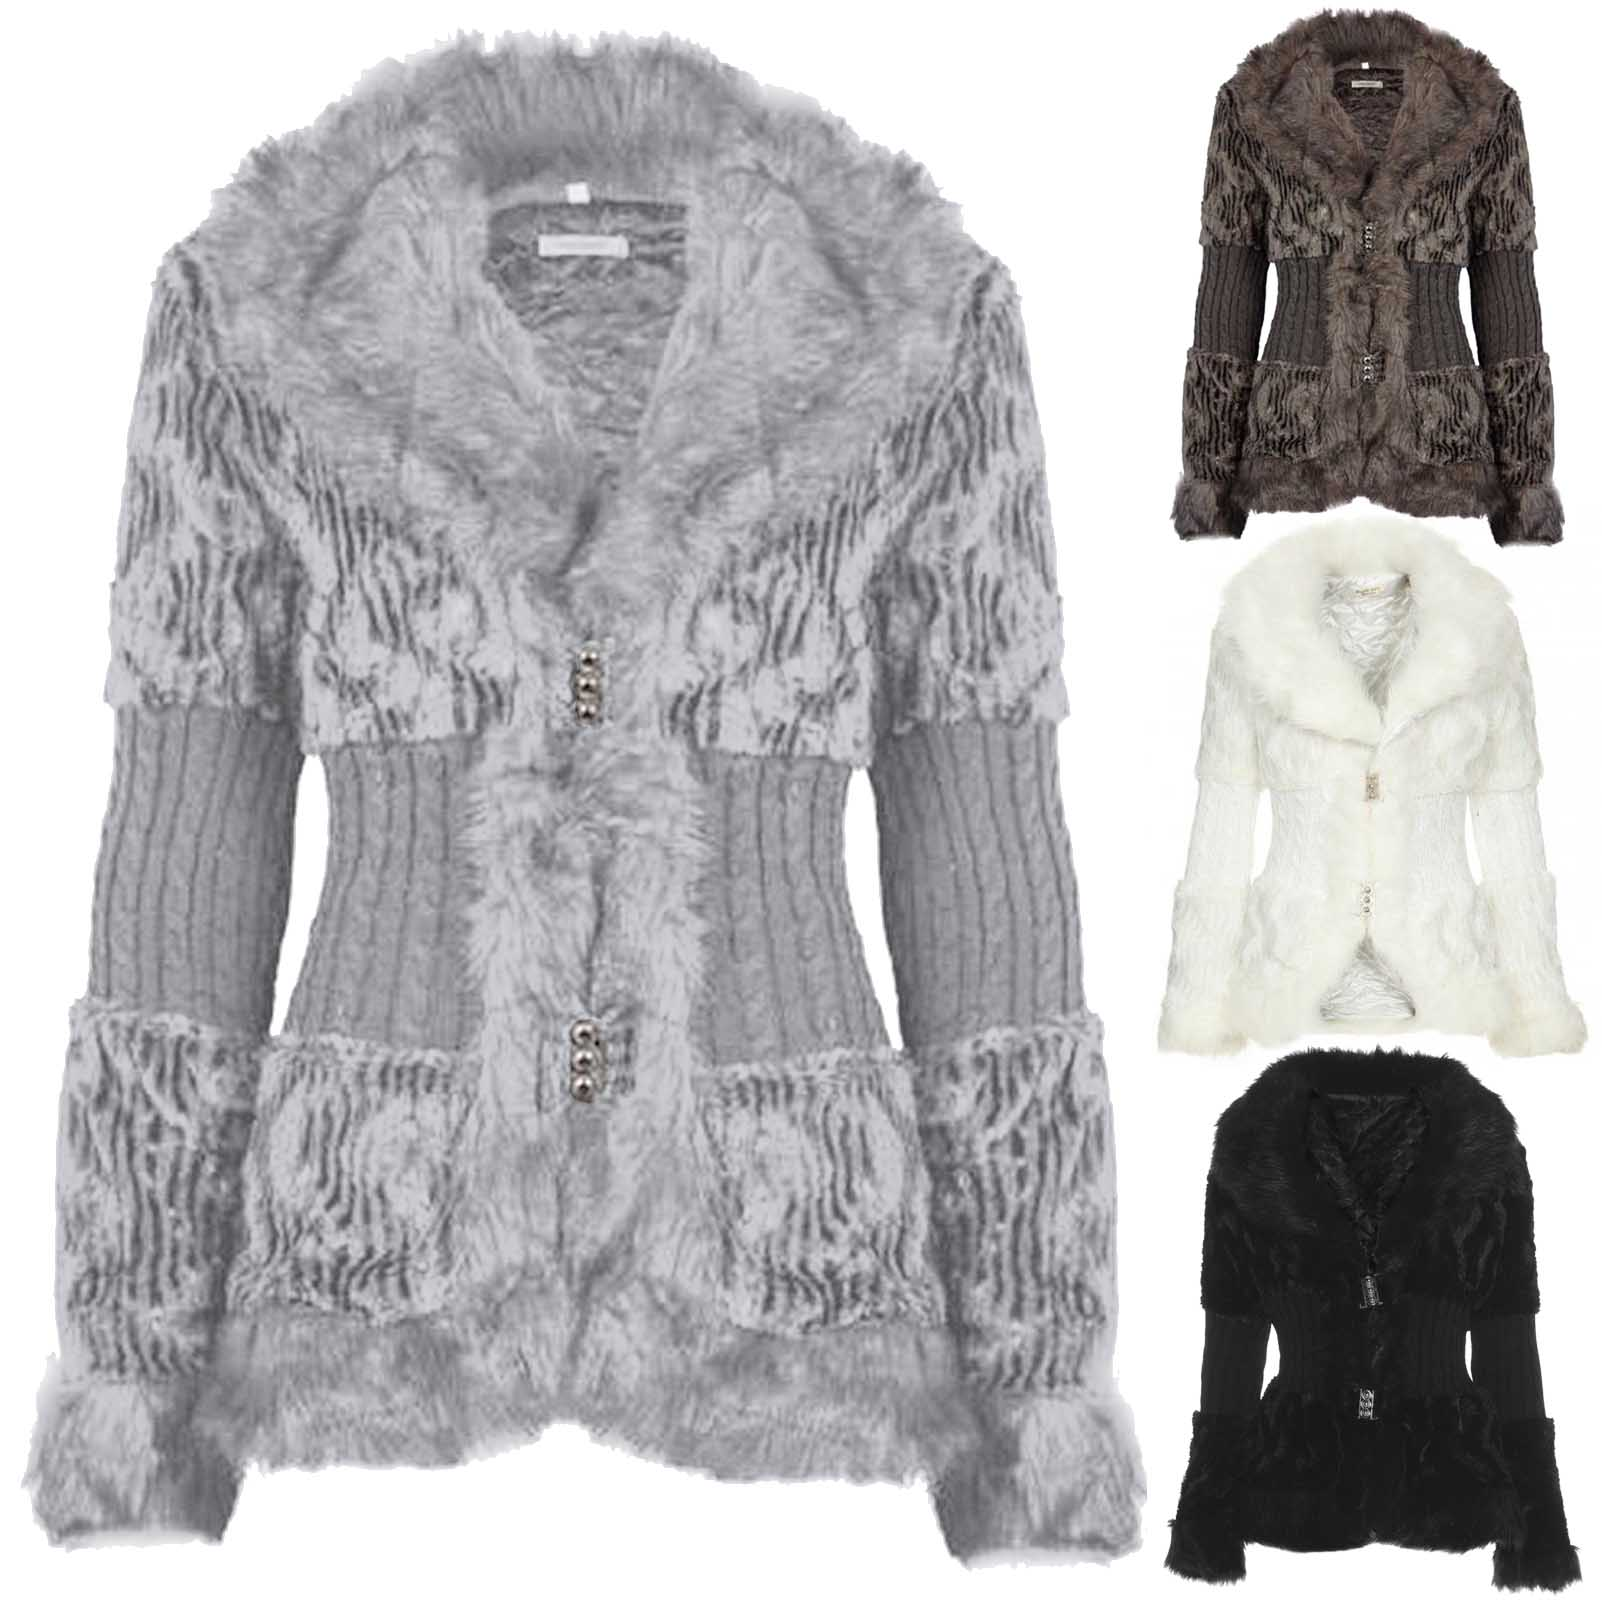 NEW LADIES FAUX FUR KNITTED JACKET CARDIGAN WOMENS LINED SOFT WARM ...